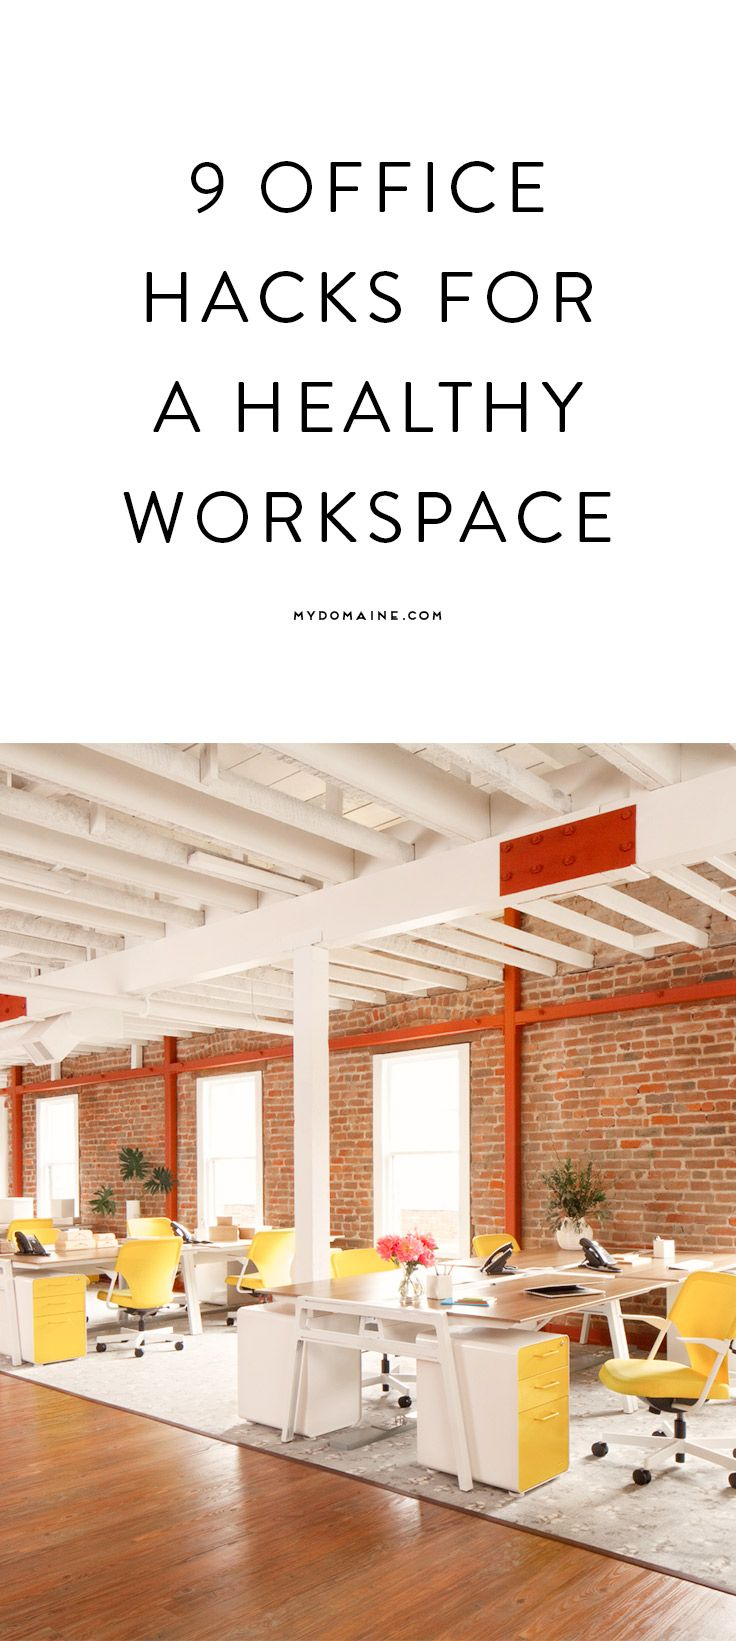 Attractive 9 Office Hacks For A Healthy Workspace. Office Interior DesignWork ...